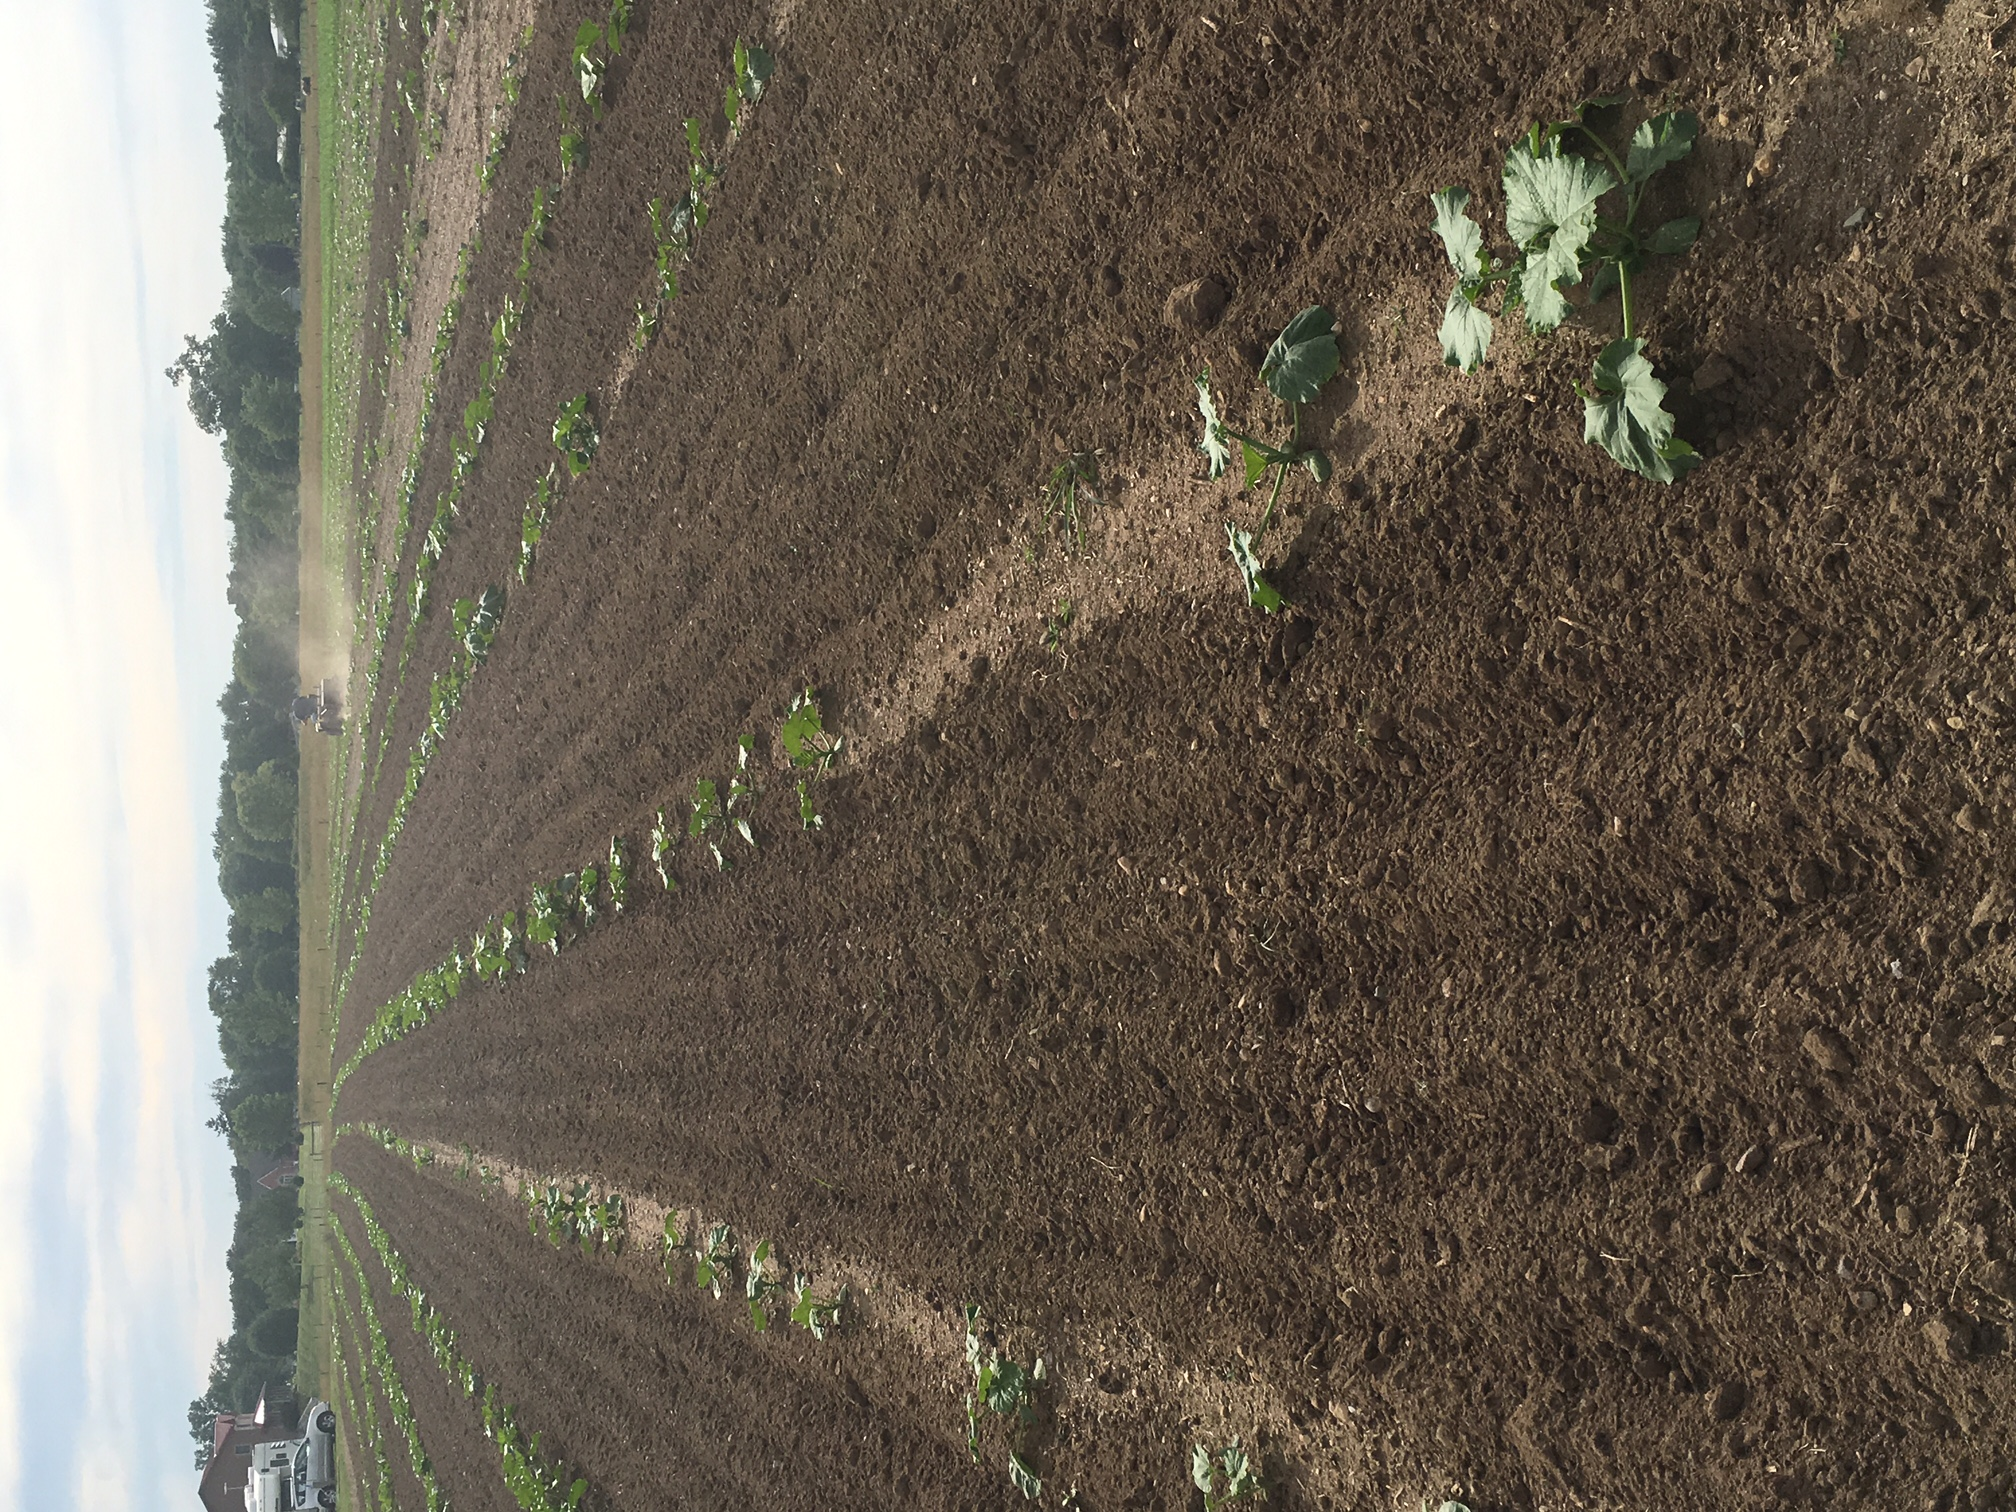 Cultivated Rows